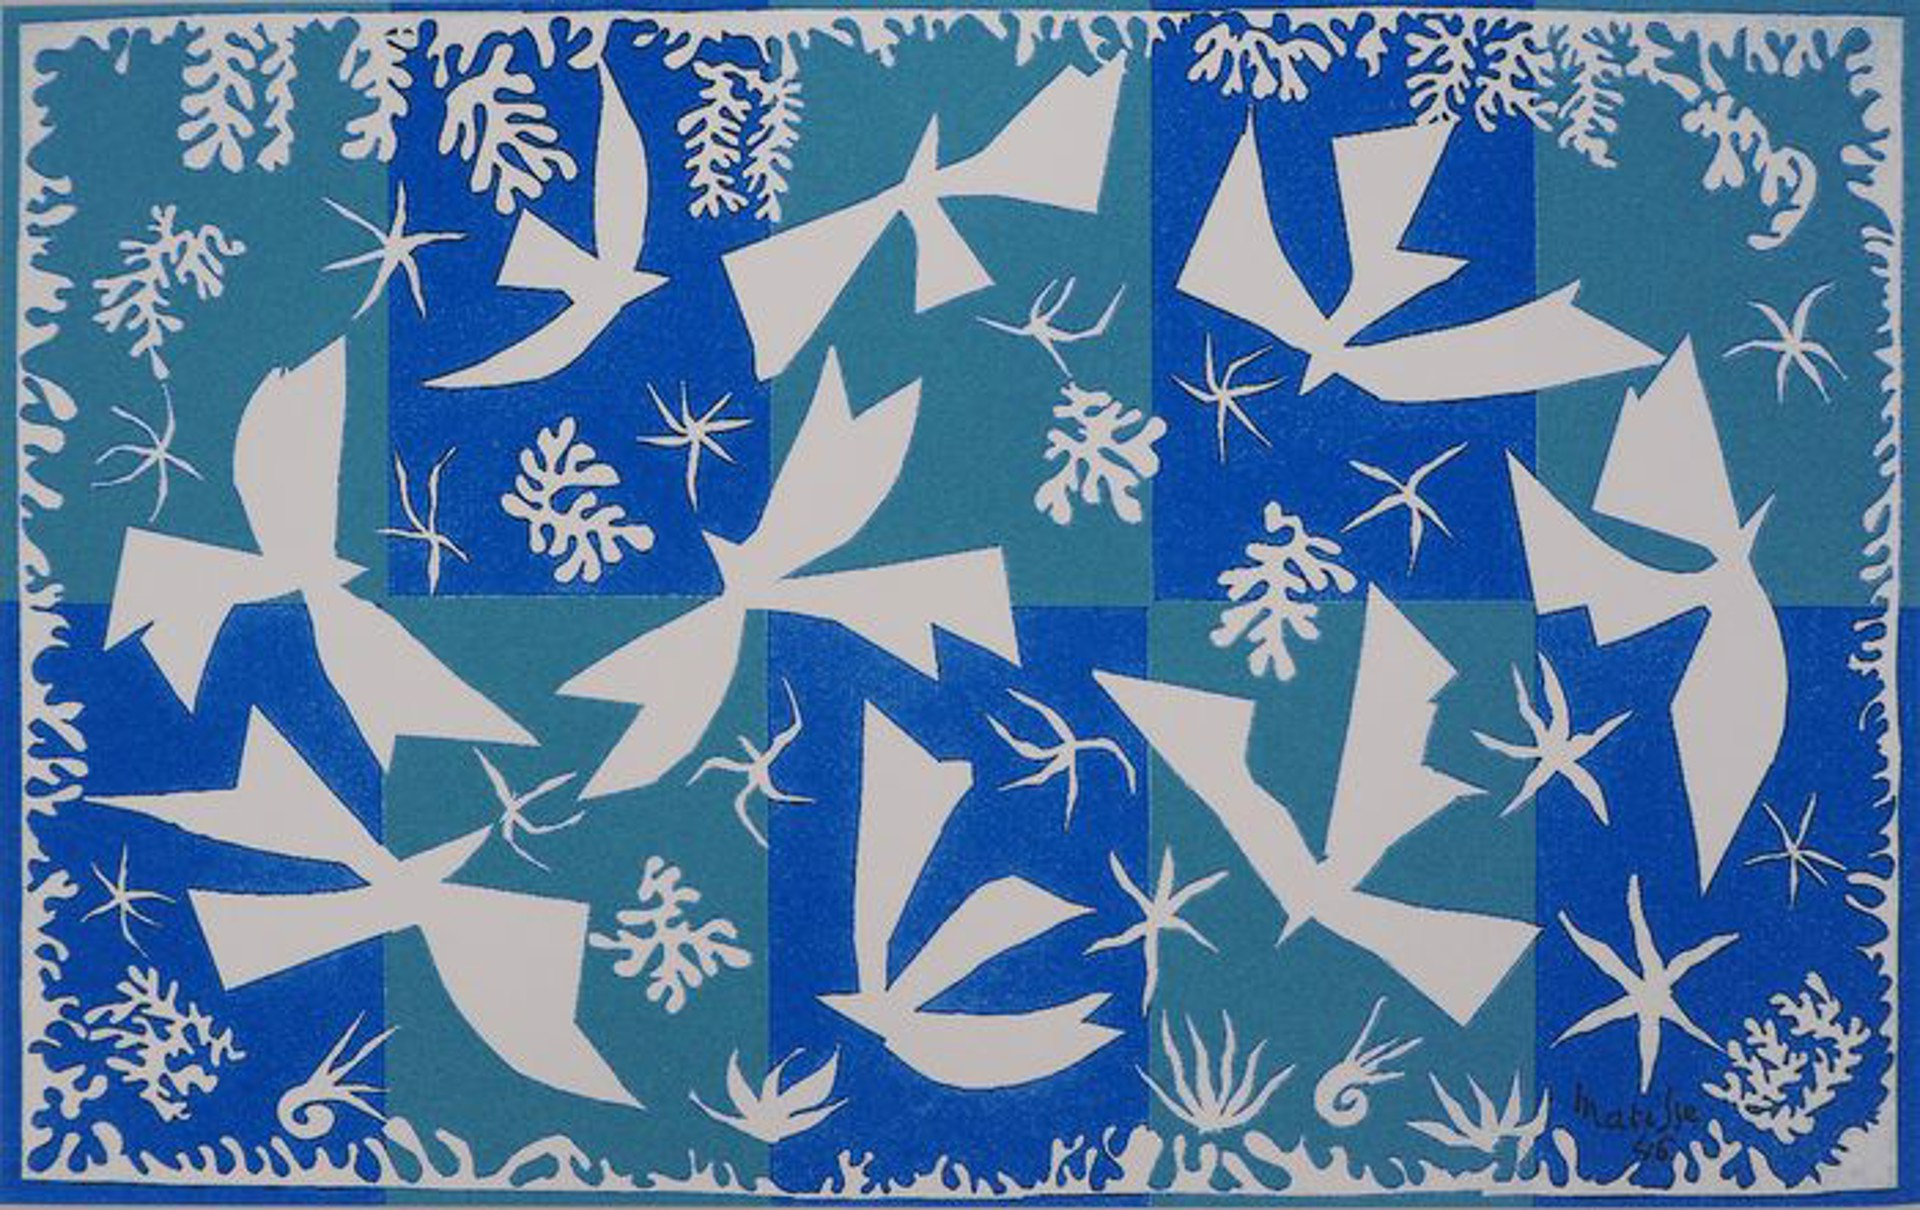 Doves in the sky  by Henri Matisse (1869 - 1954)